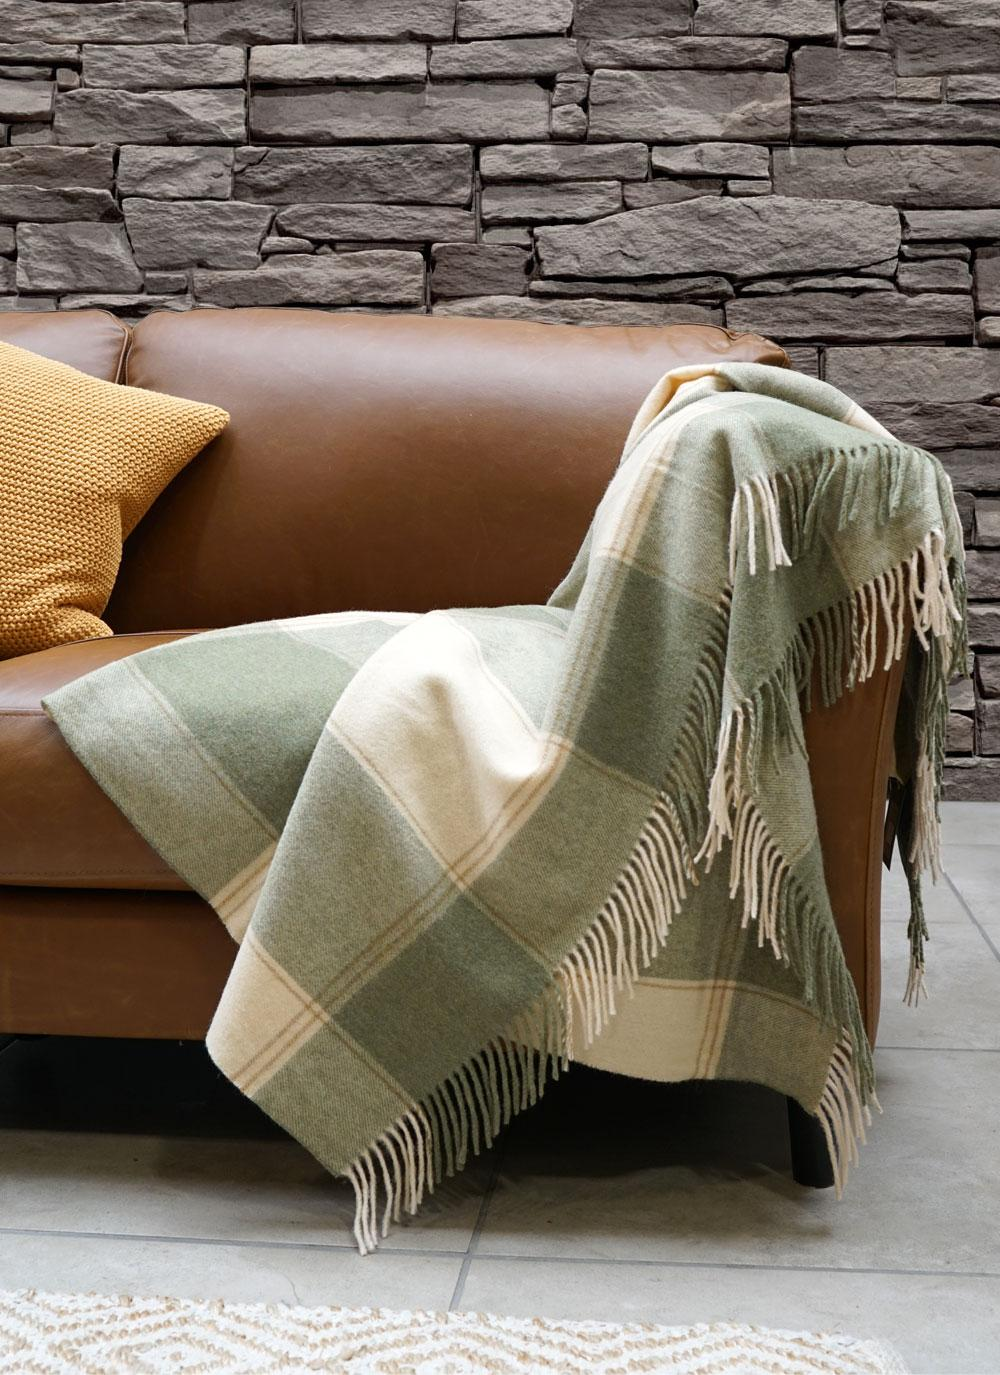 Cozy up with the Blarney Green & Cream Lambswool Throw